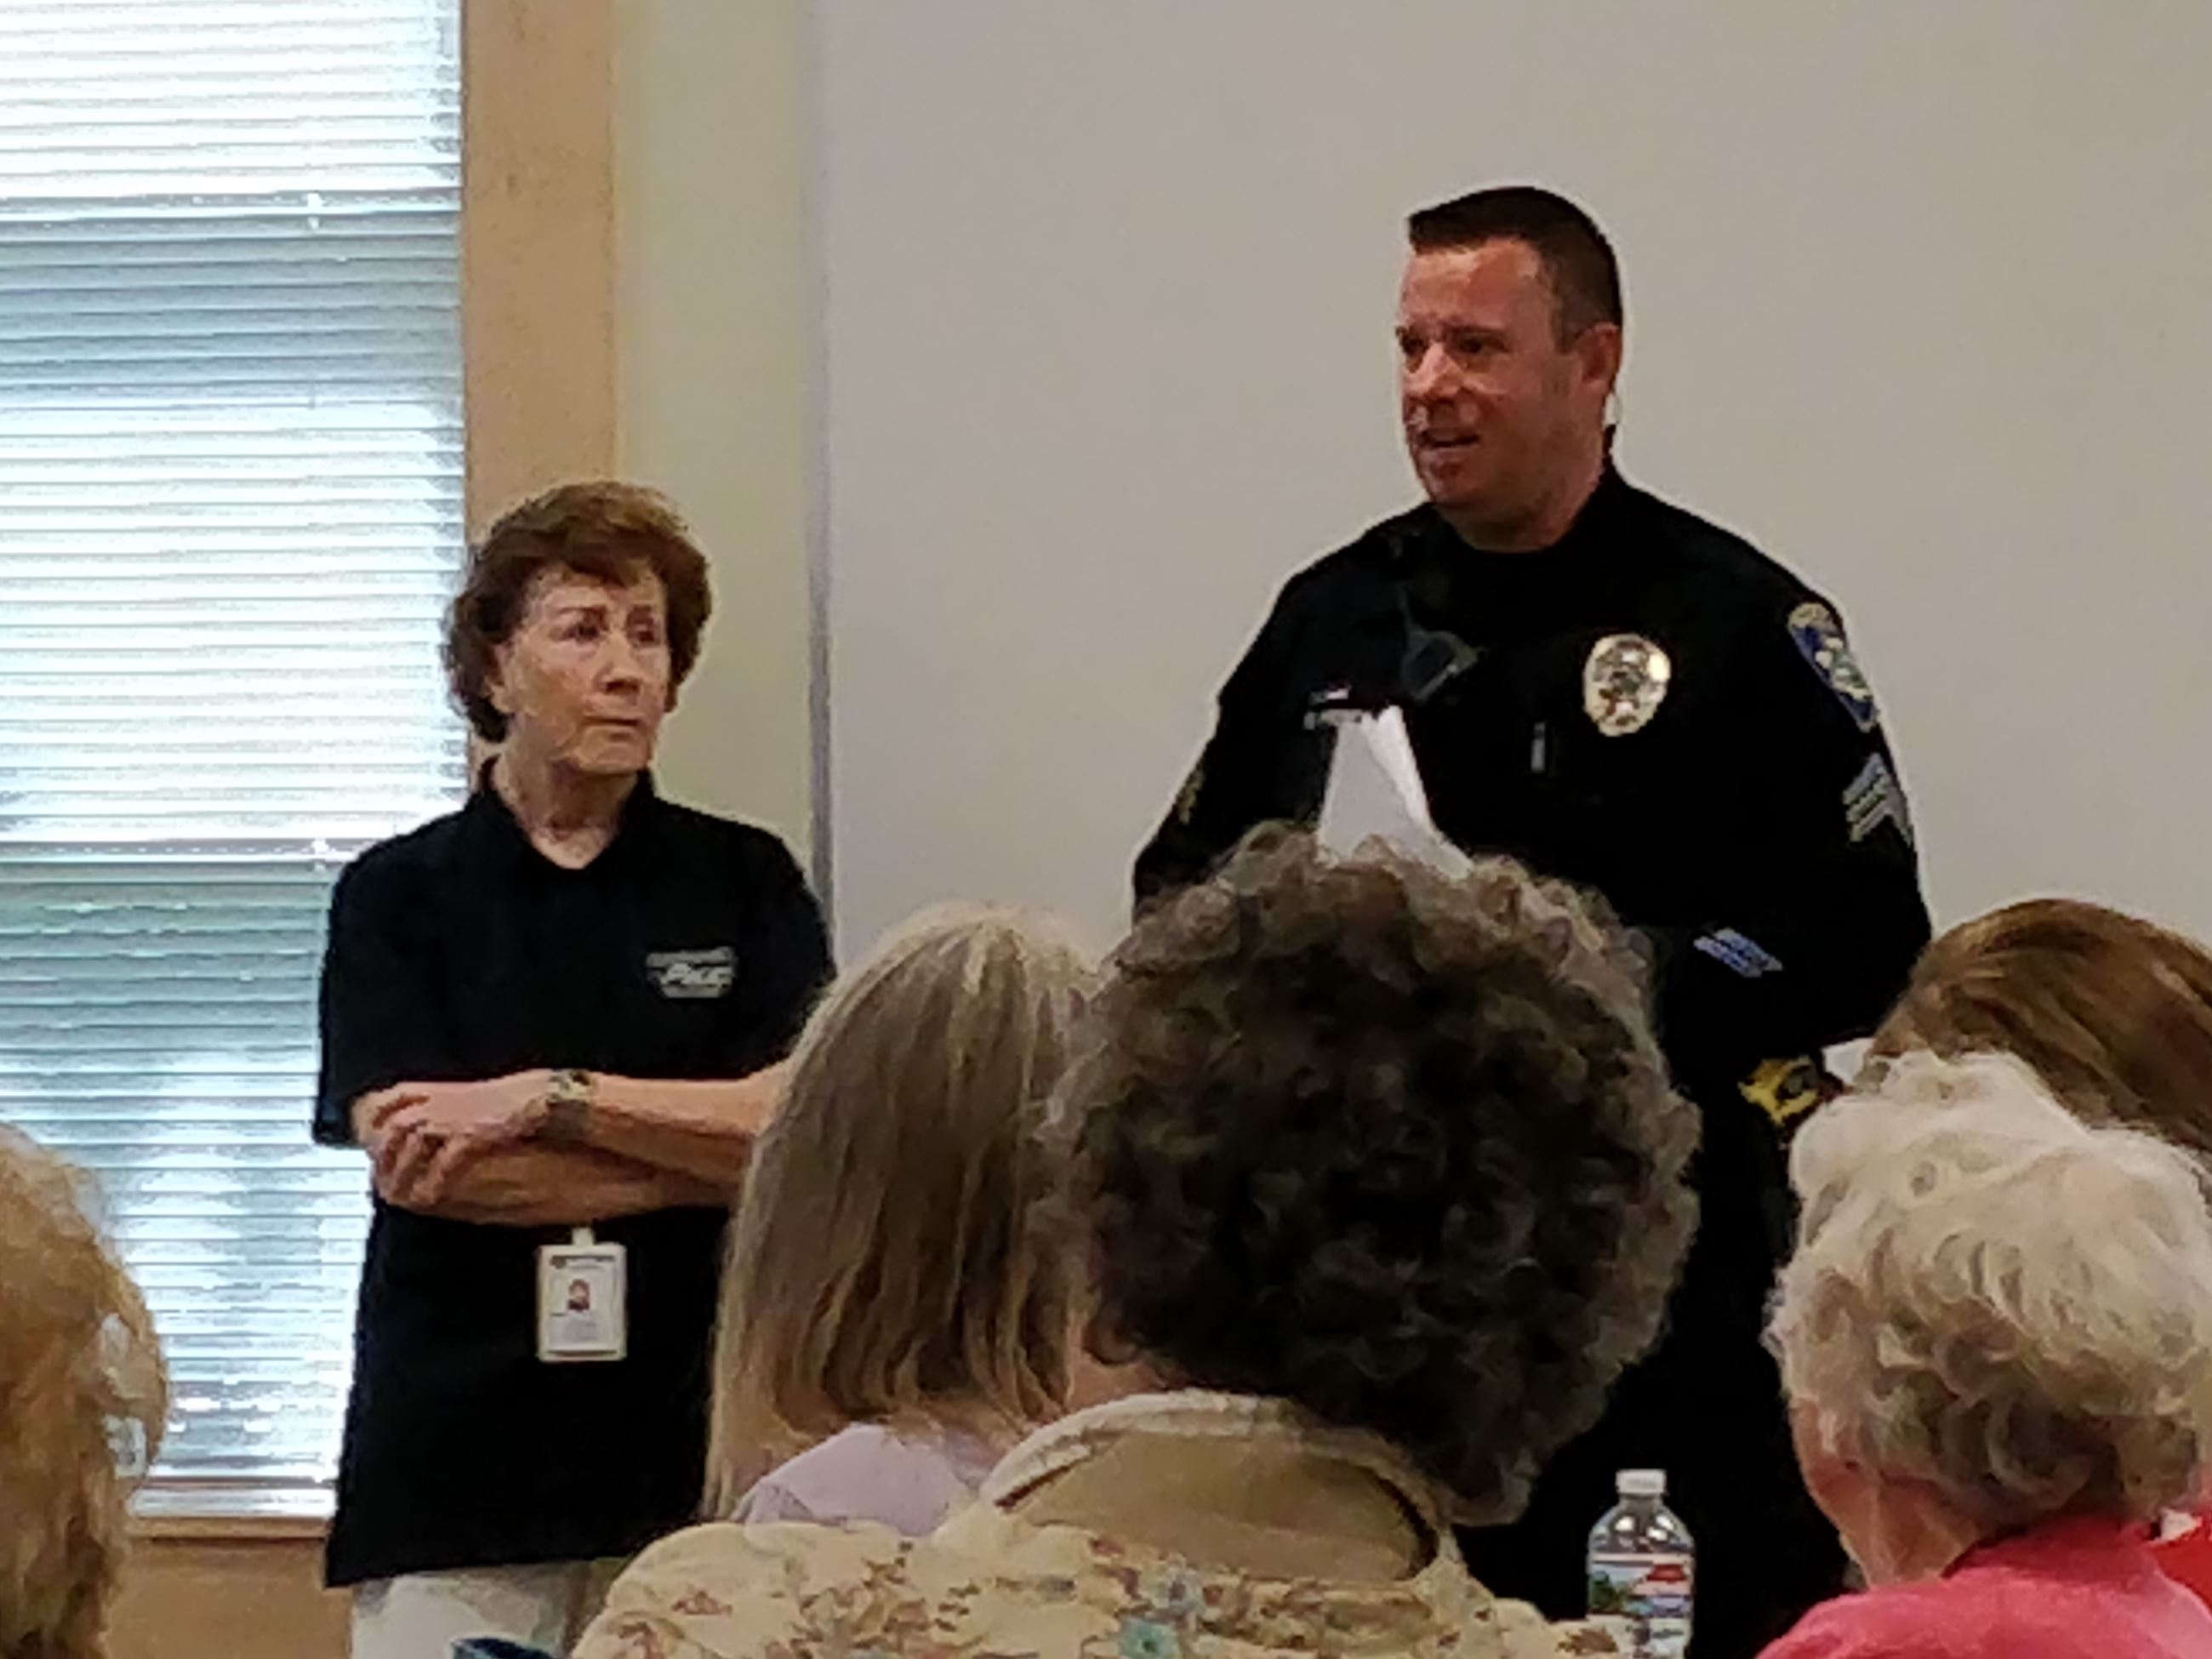 Officer Priebe and Neighborhood Watch Coordinator, Pam Mosher